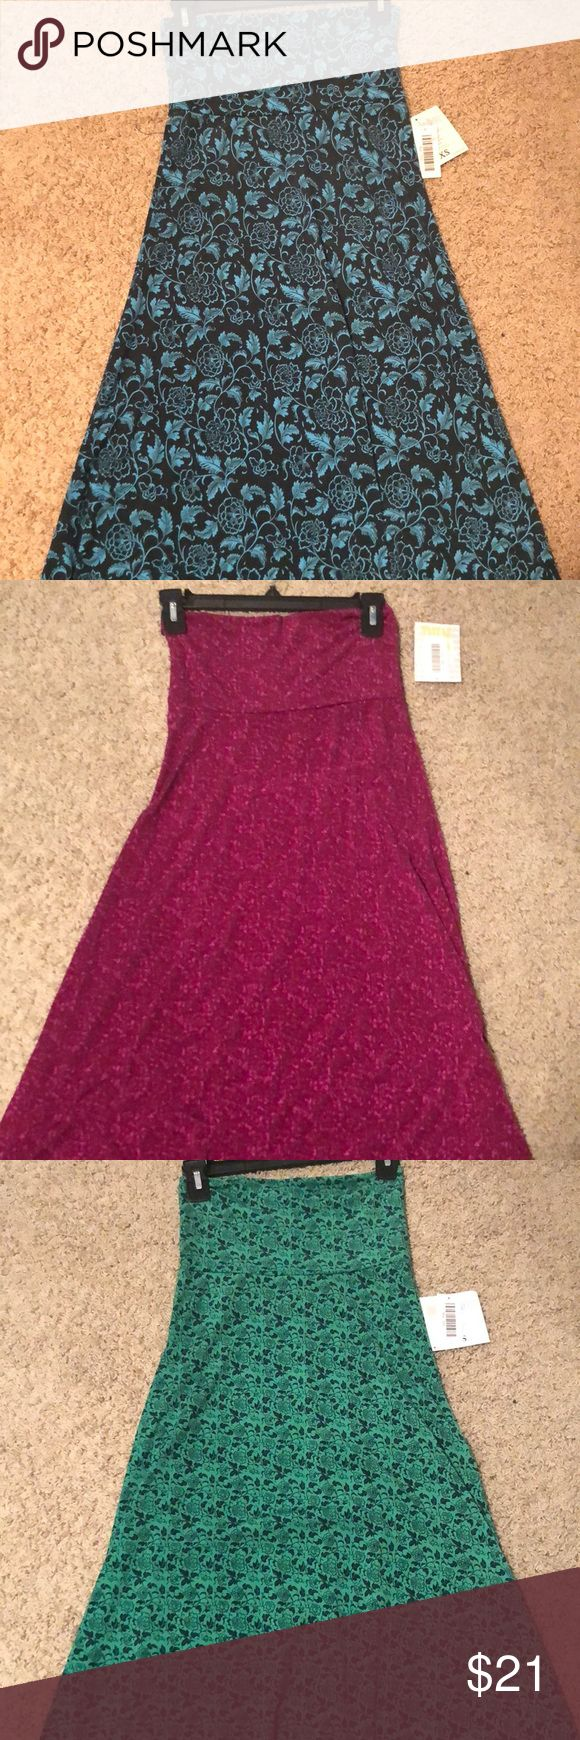 LuLaRoe Maxi skirt BRAND NEW! Seller going out of business! Everything is at cost! LuLaRoe Skirts Maxi